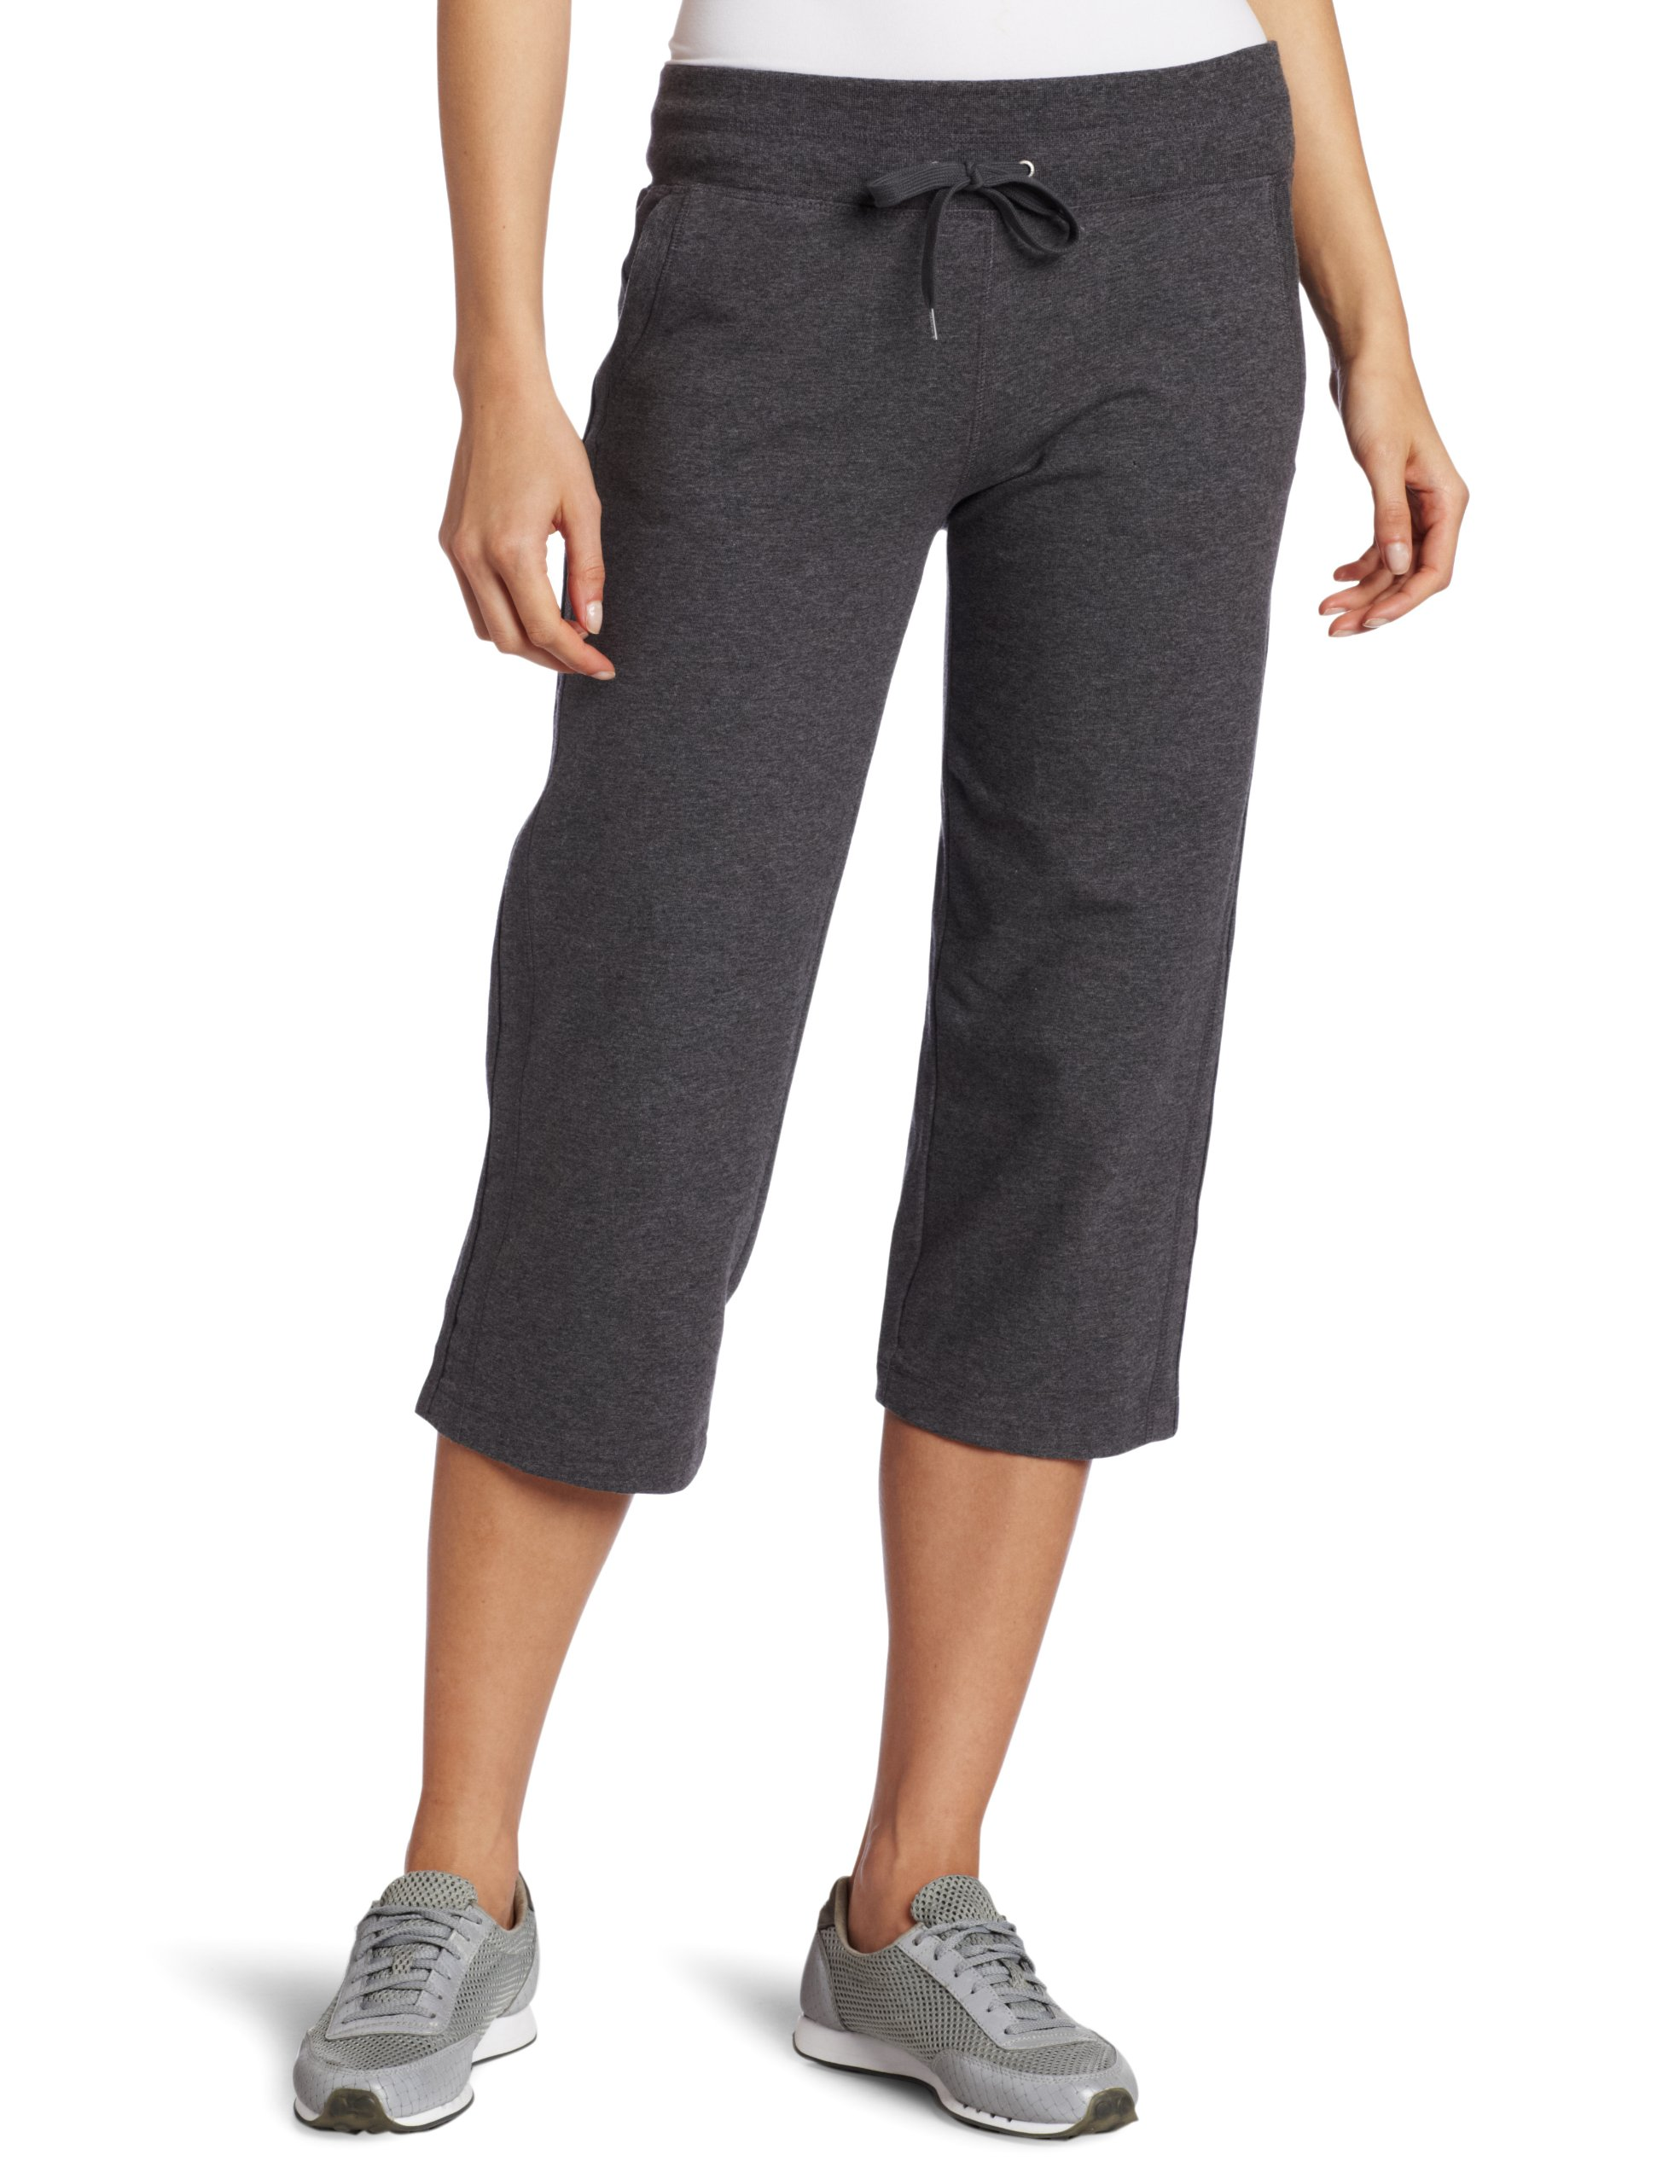 Danskin Women's Drawcord Crop Pant, Charcoal Heather, X-Small